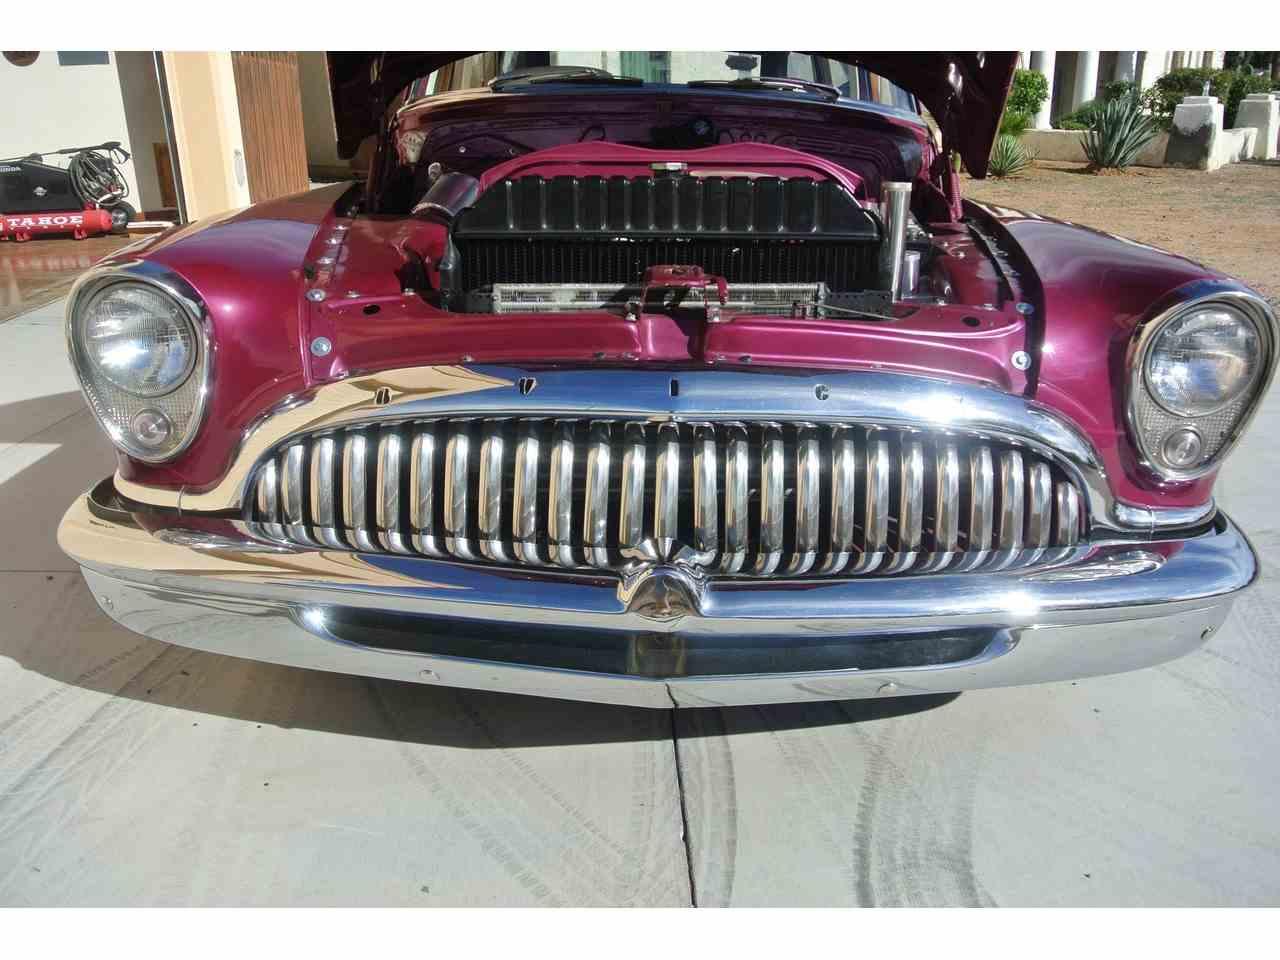 Large Picture of Classic 1953 Buick Super - $54,000.00 Offered by Classic Car Pal - KJ0R